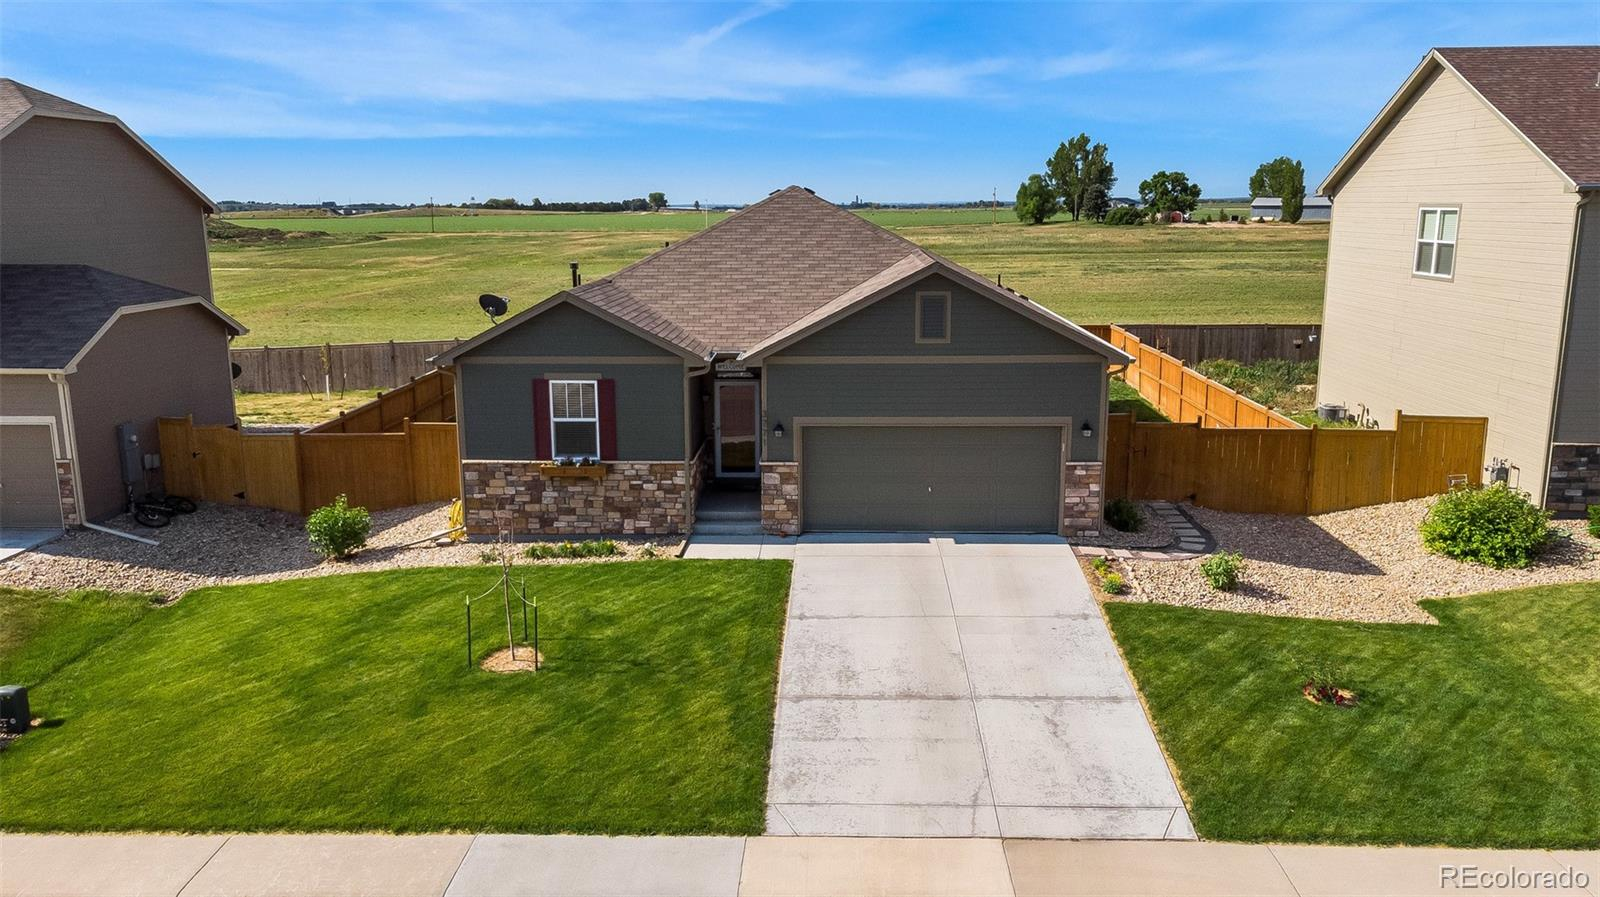 MLS# 2622320 - 2 - 3771 Torch Lily Street, Wellington, CO 80549